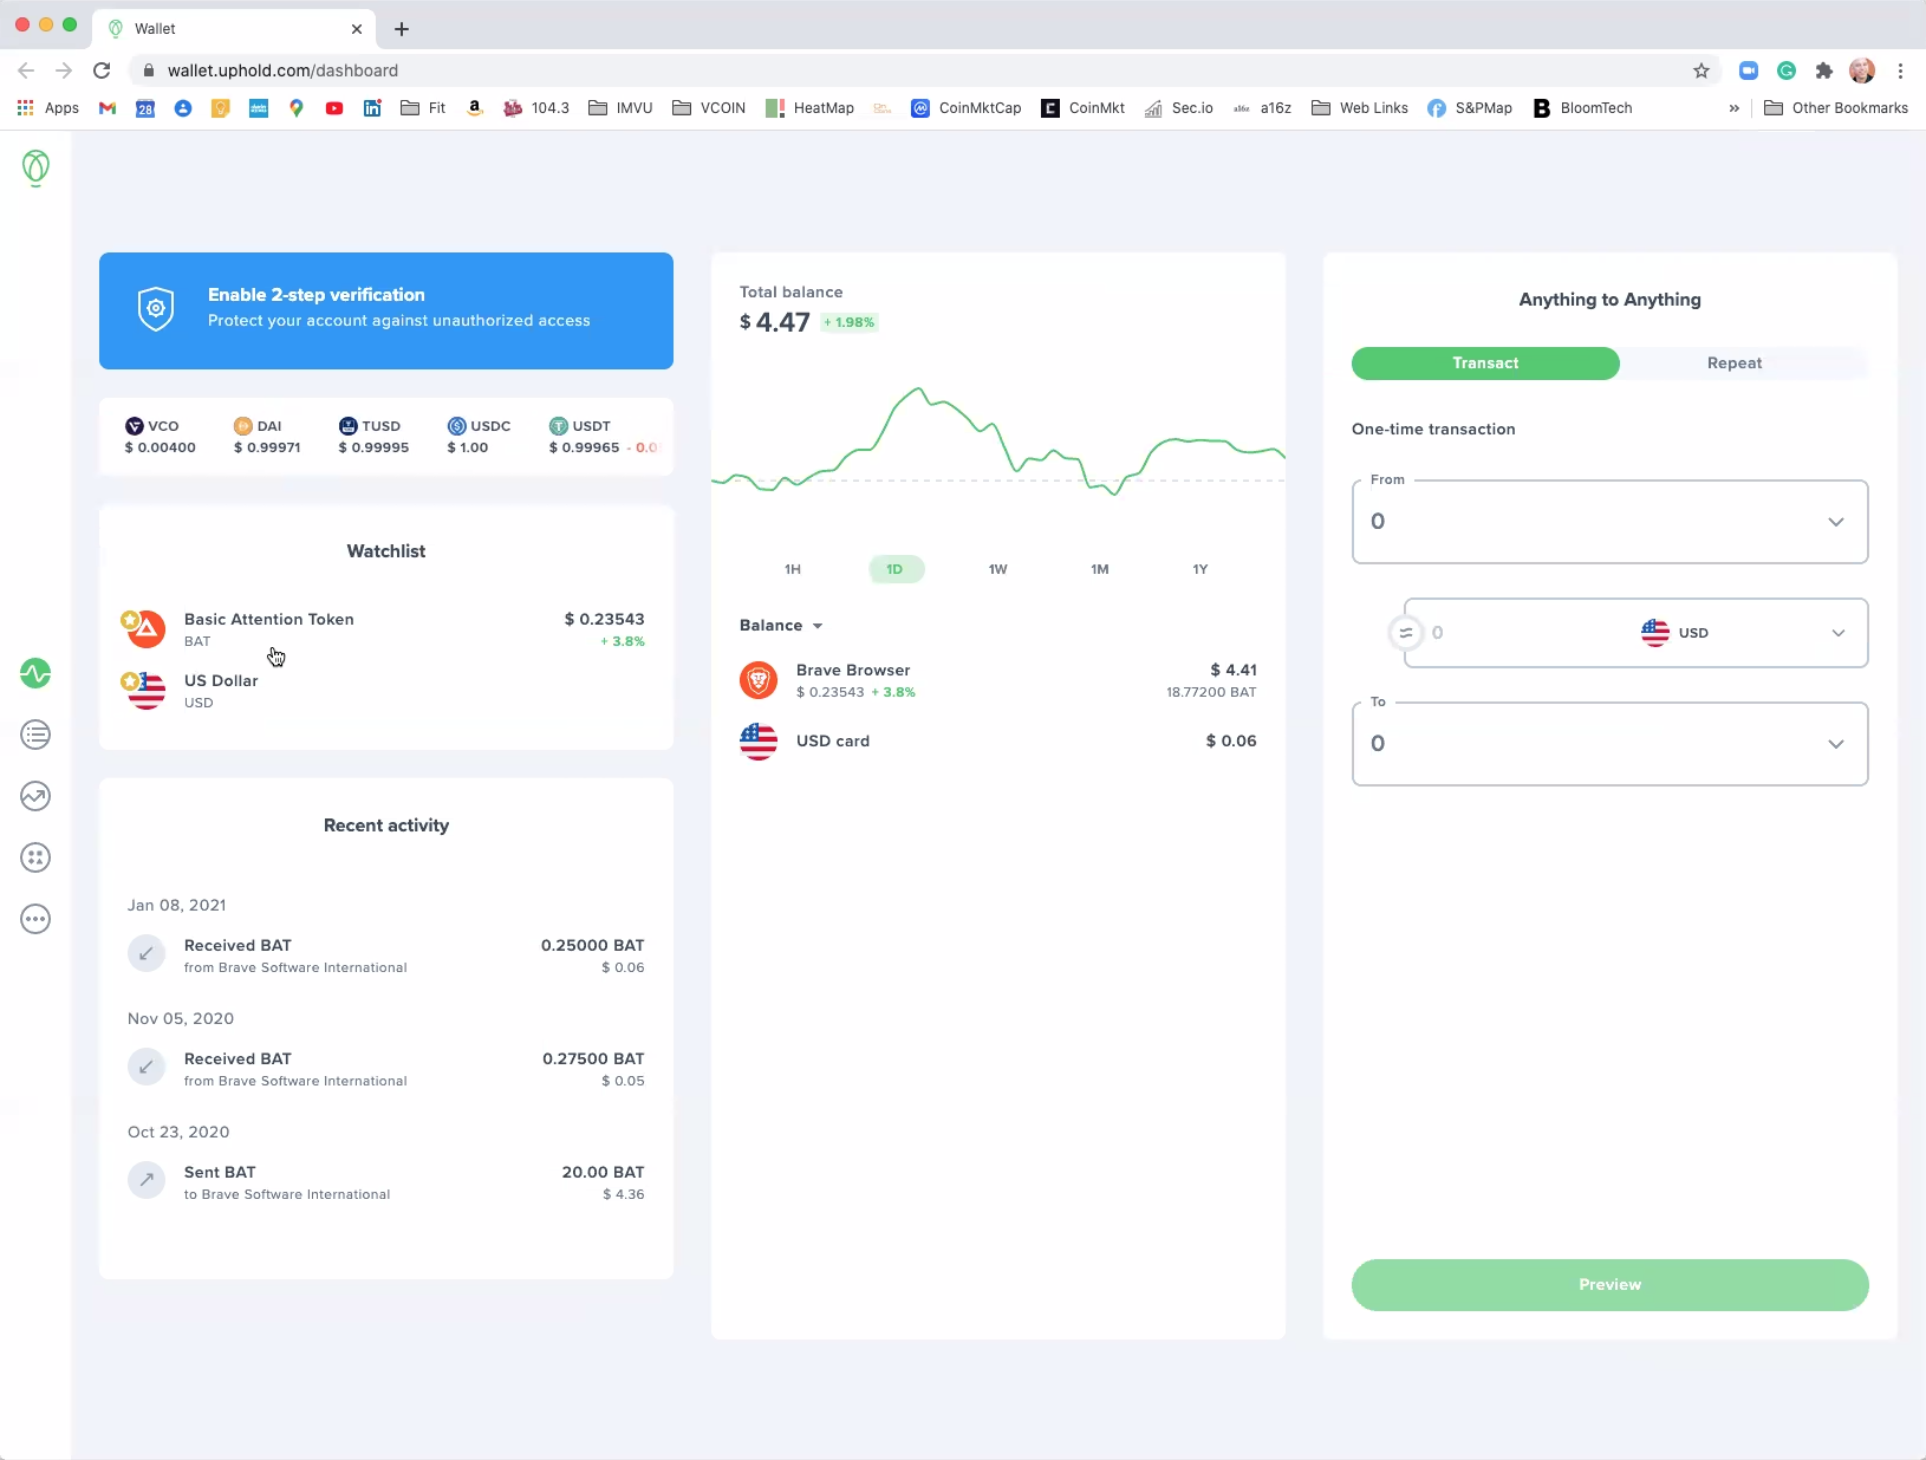 The Uphold wallet interface for converting VCOIN to fiat